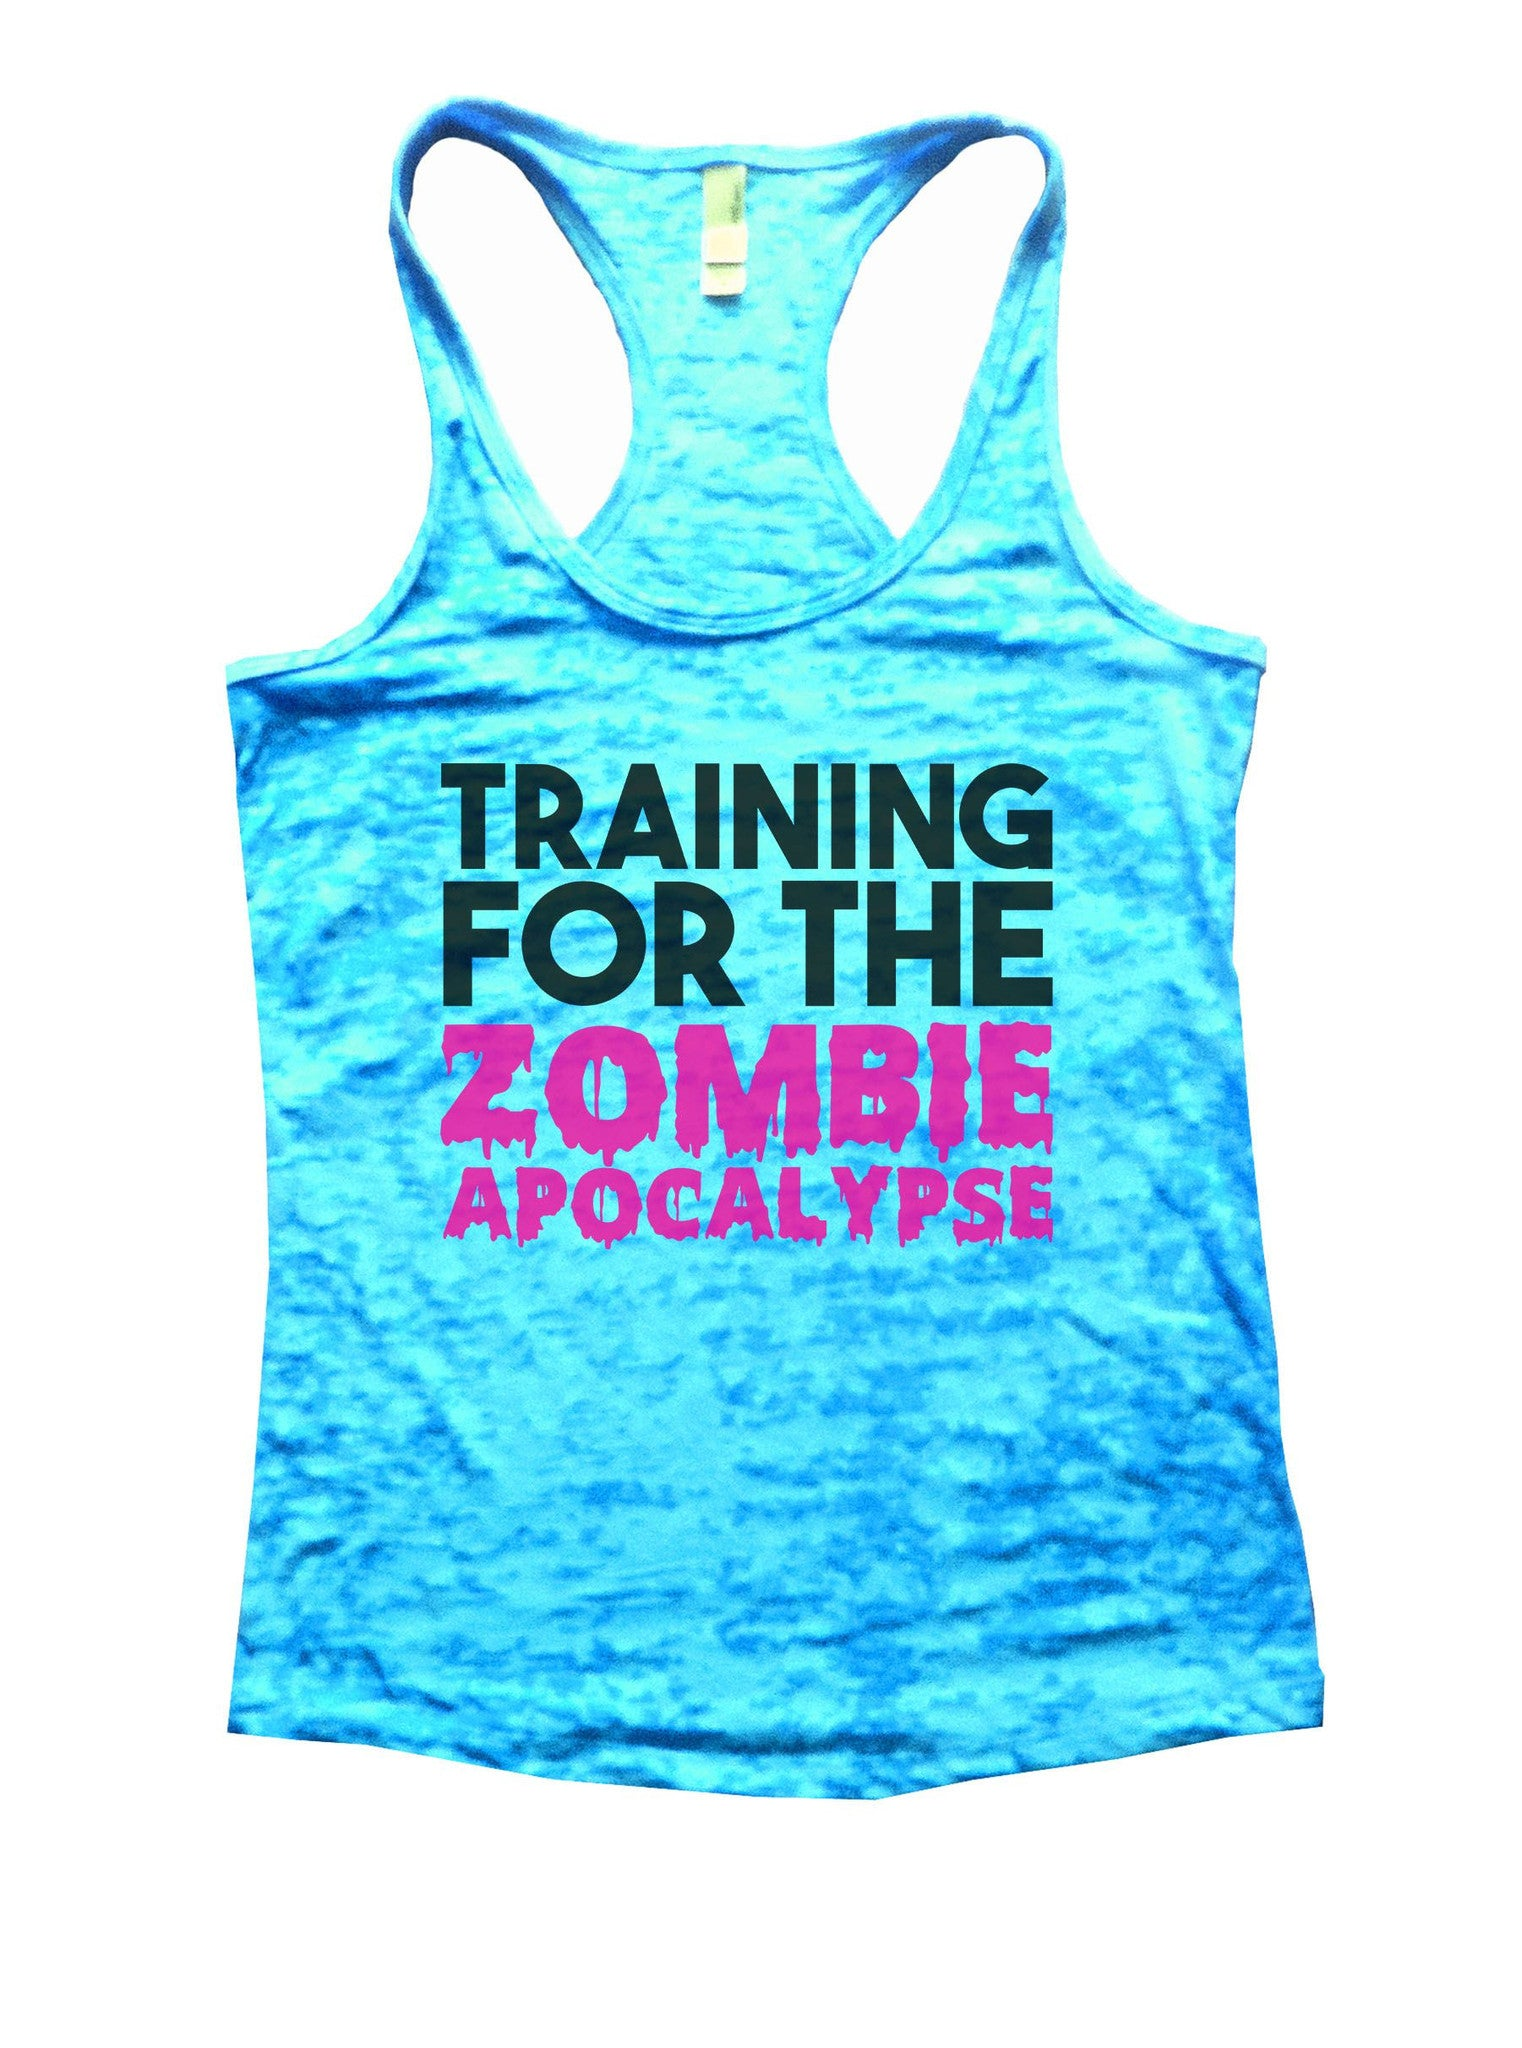 Training For The Zombie Apocalypse Burnout Tank Top By BurnoutTankTops.com - 873 - Funny Shirts Tank Tops Burnouts and Triblends  - 4